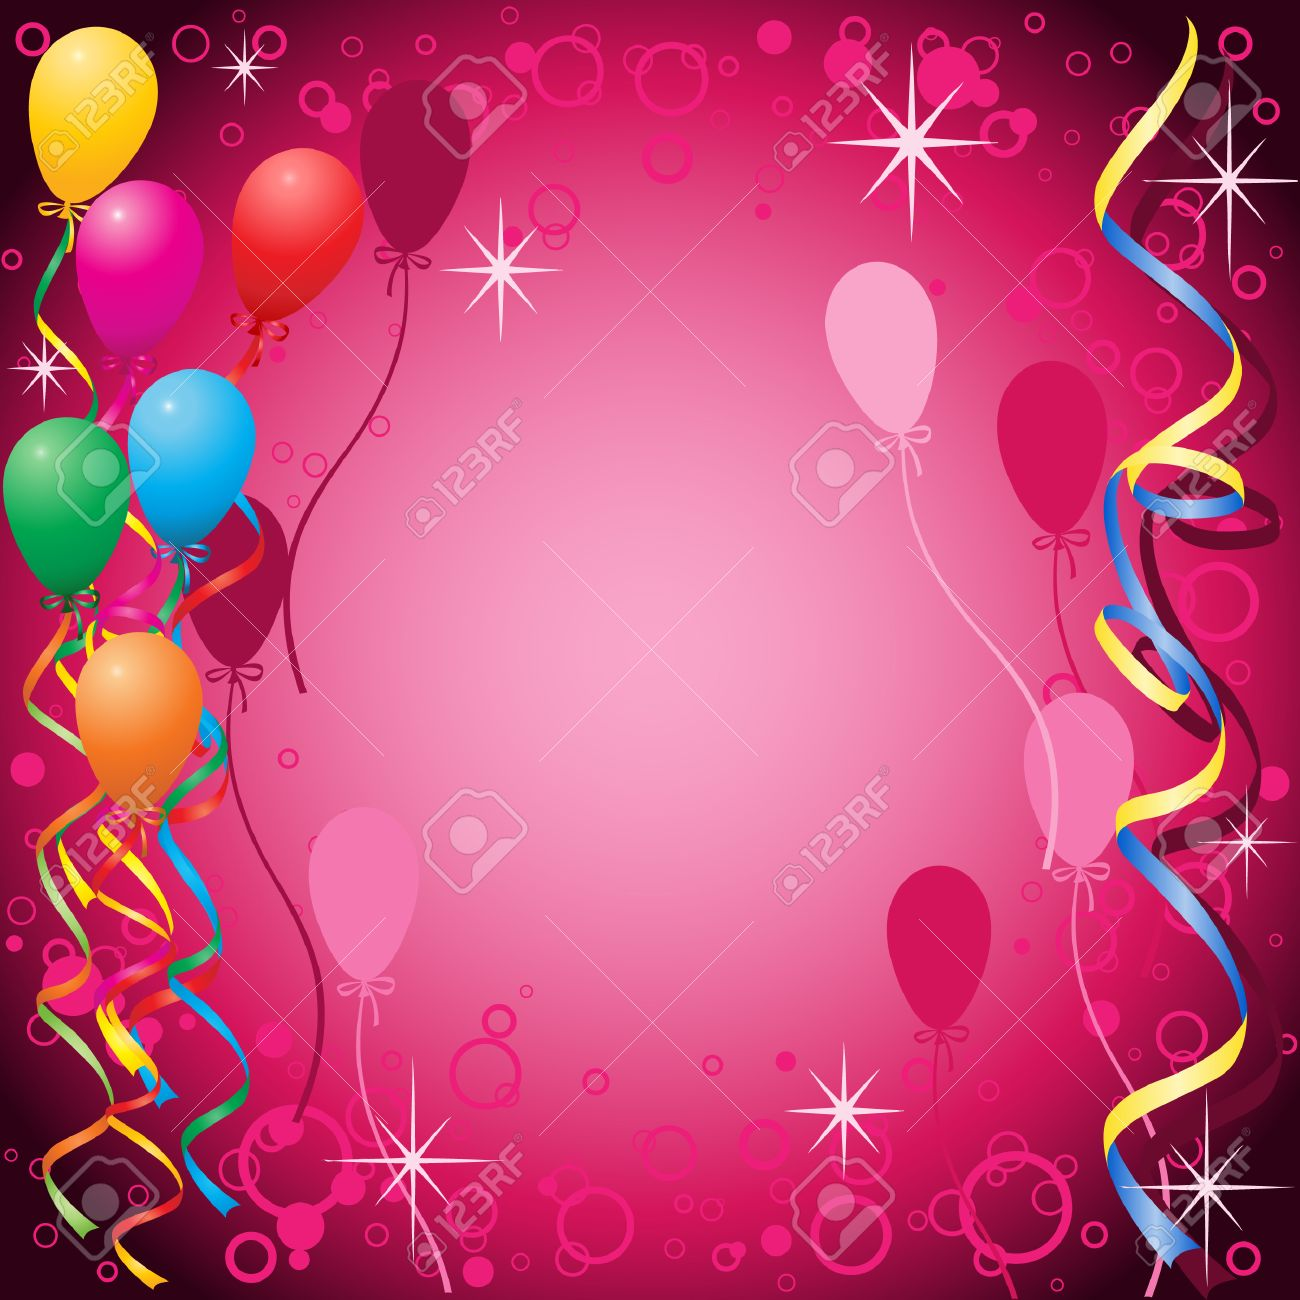 party background with balloons and streamers royalty free cliparts